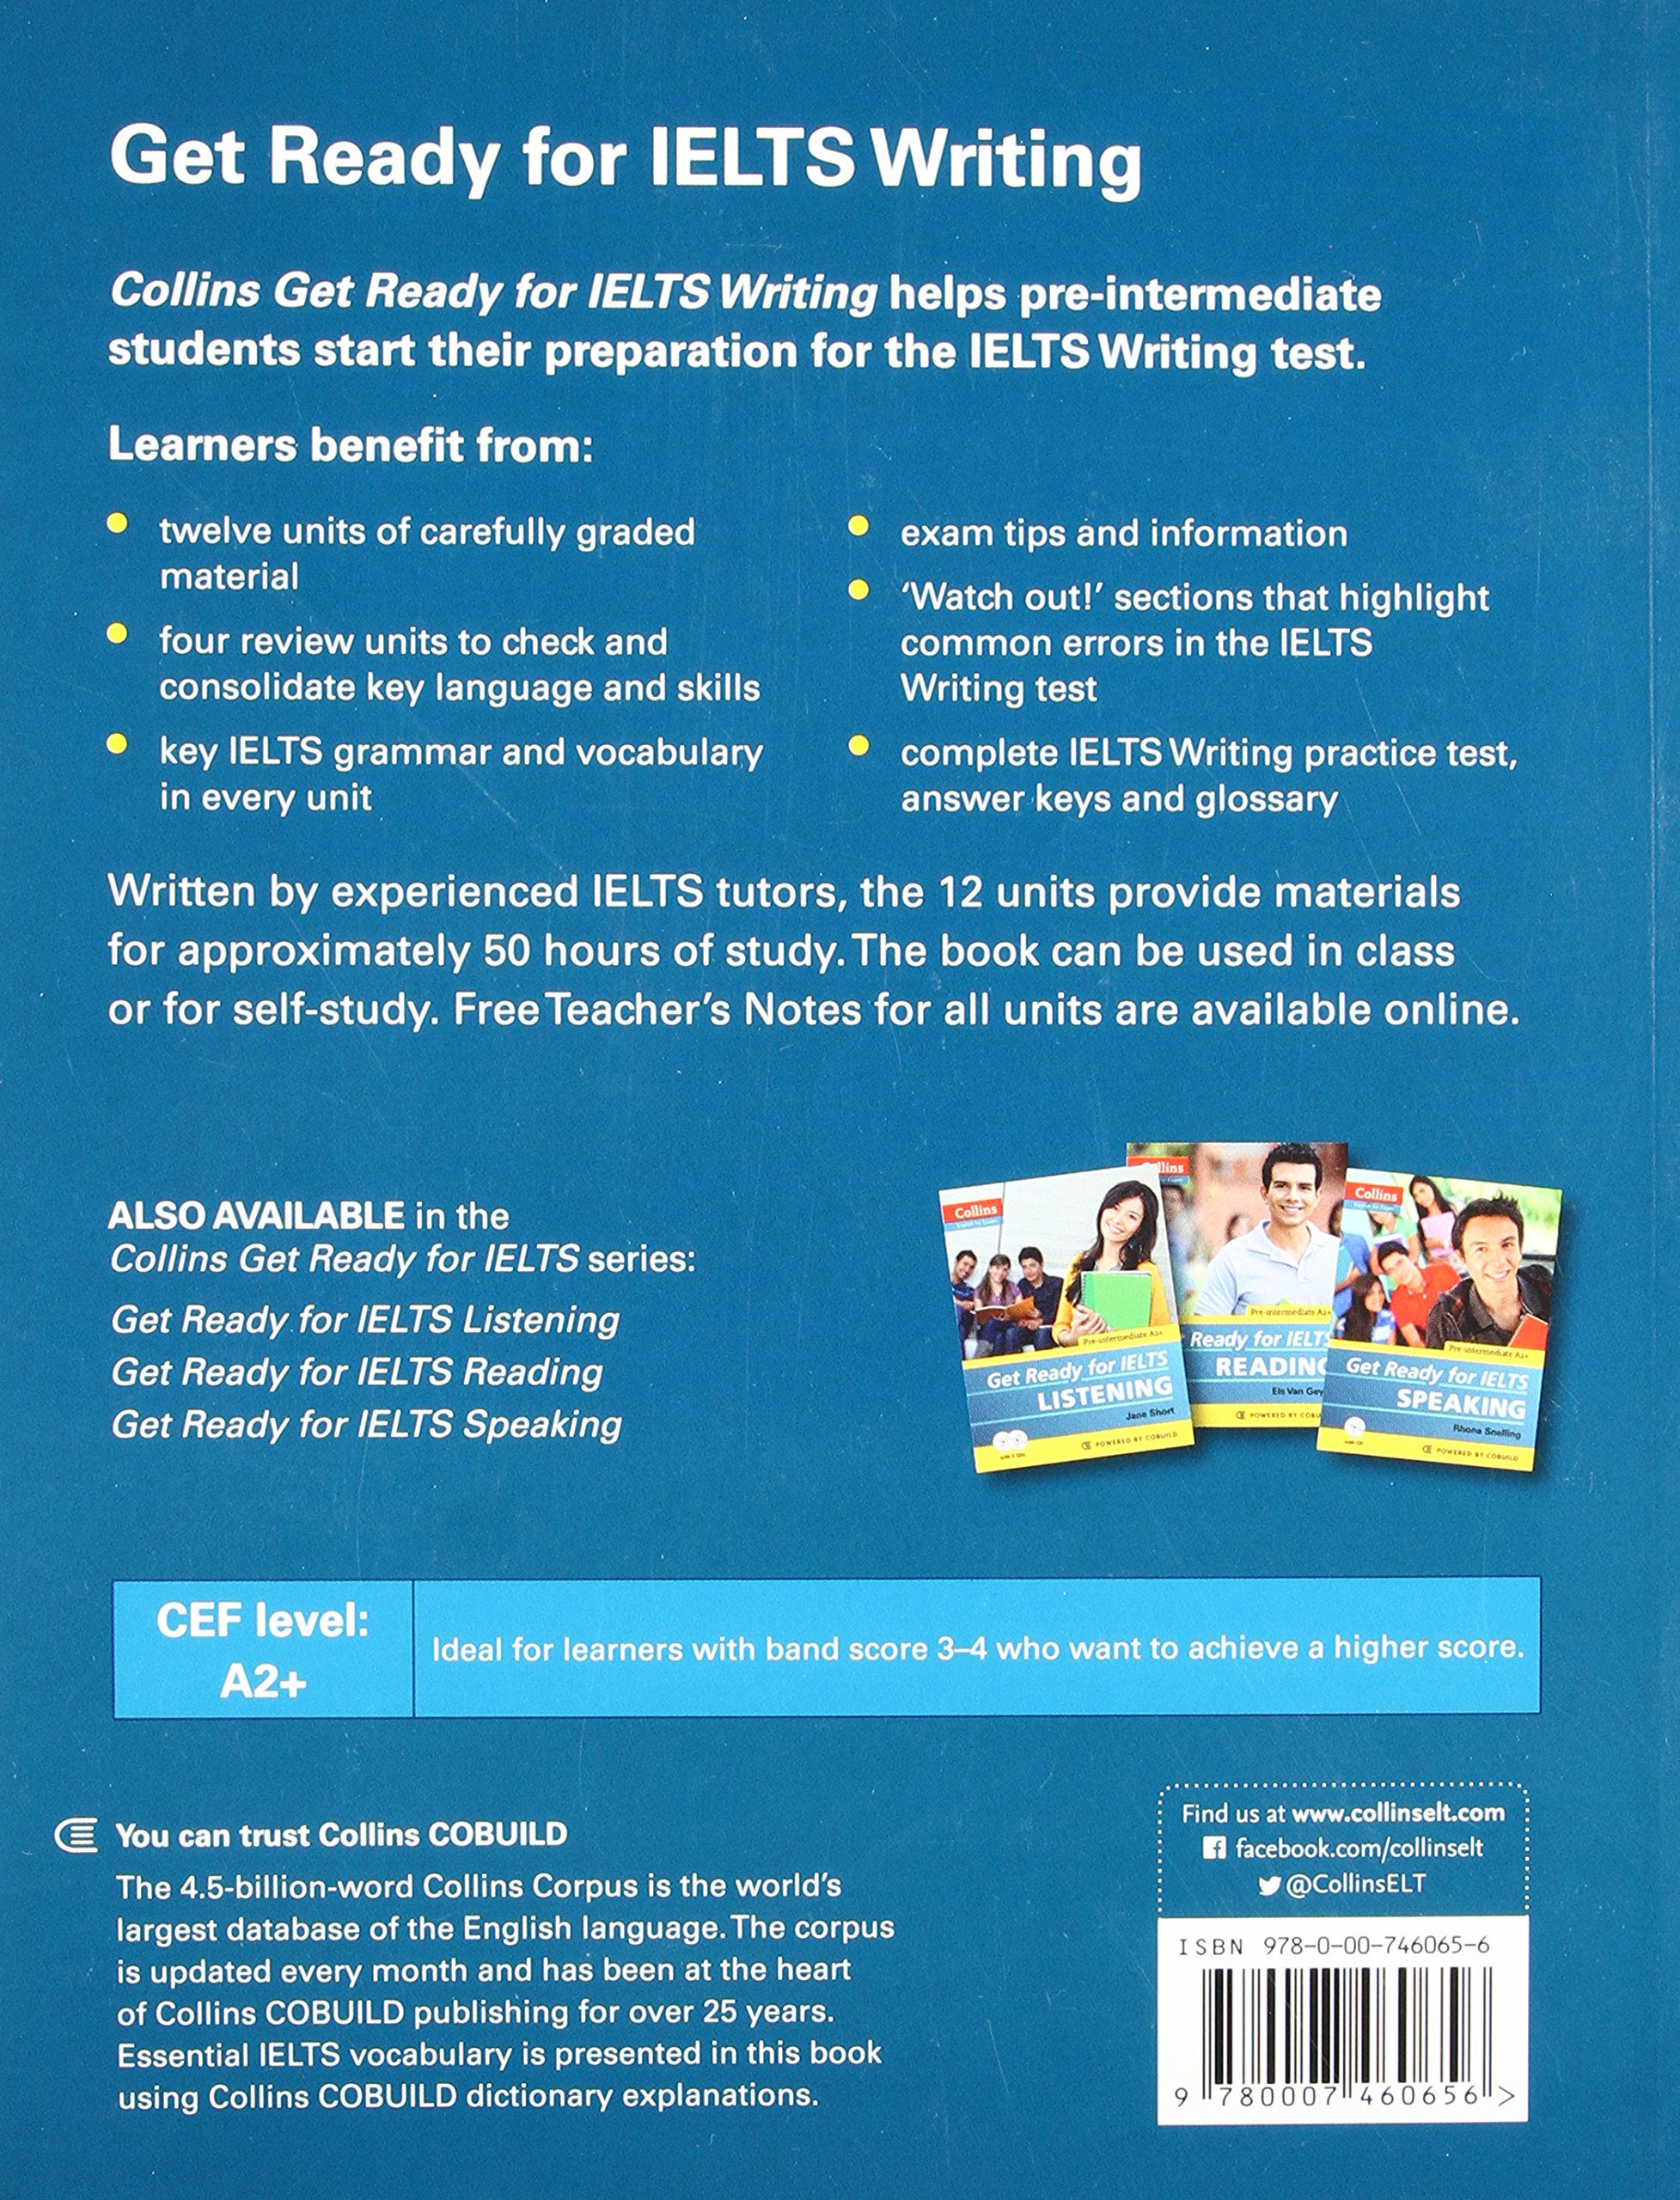 Get ready for ielts writing ielts 4 a2 collins english for ielts amazon co uk fiona aish jo tomlinson 9780007460656 books